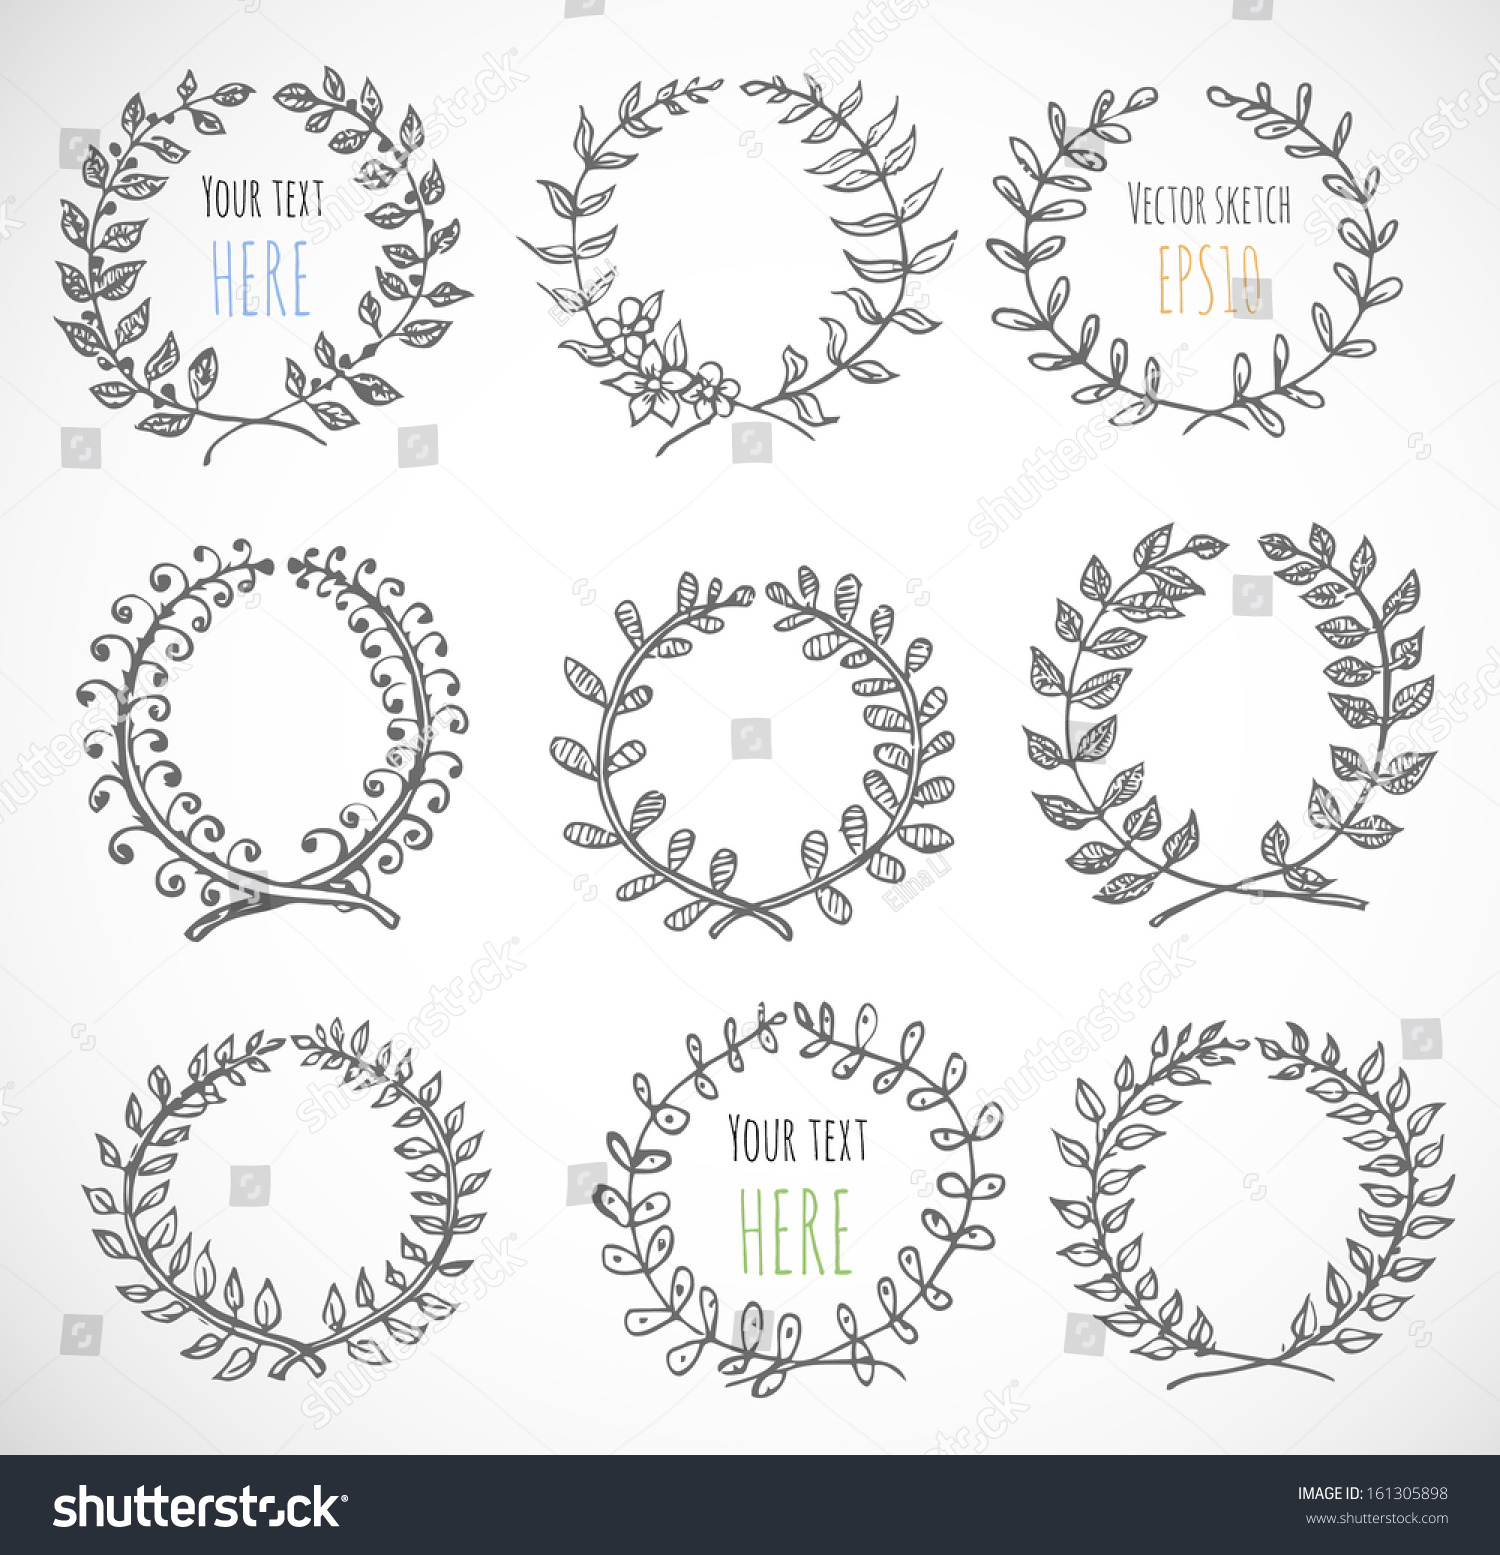 Circle Floral Borders Sketch Frames Handdrawn Stock Vector 161305898 - Shutterstock